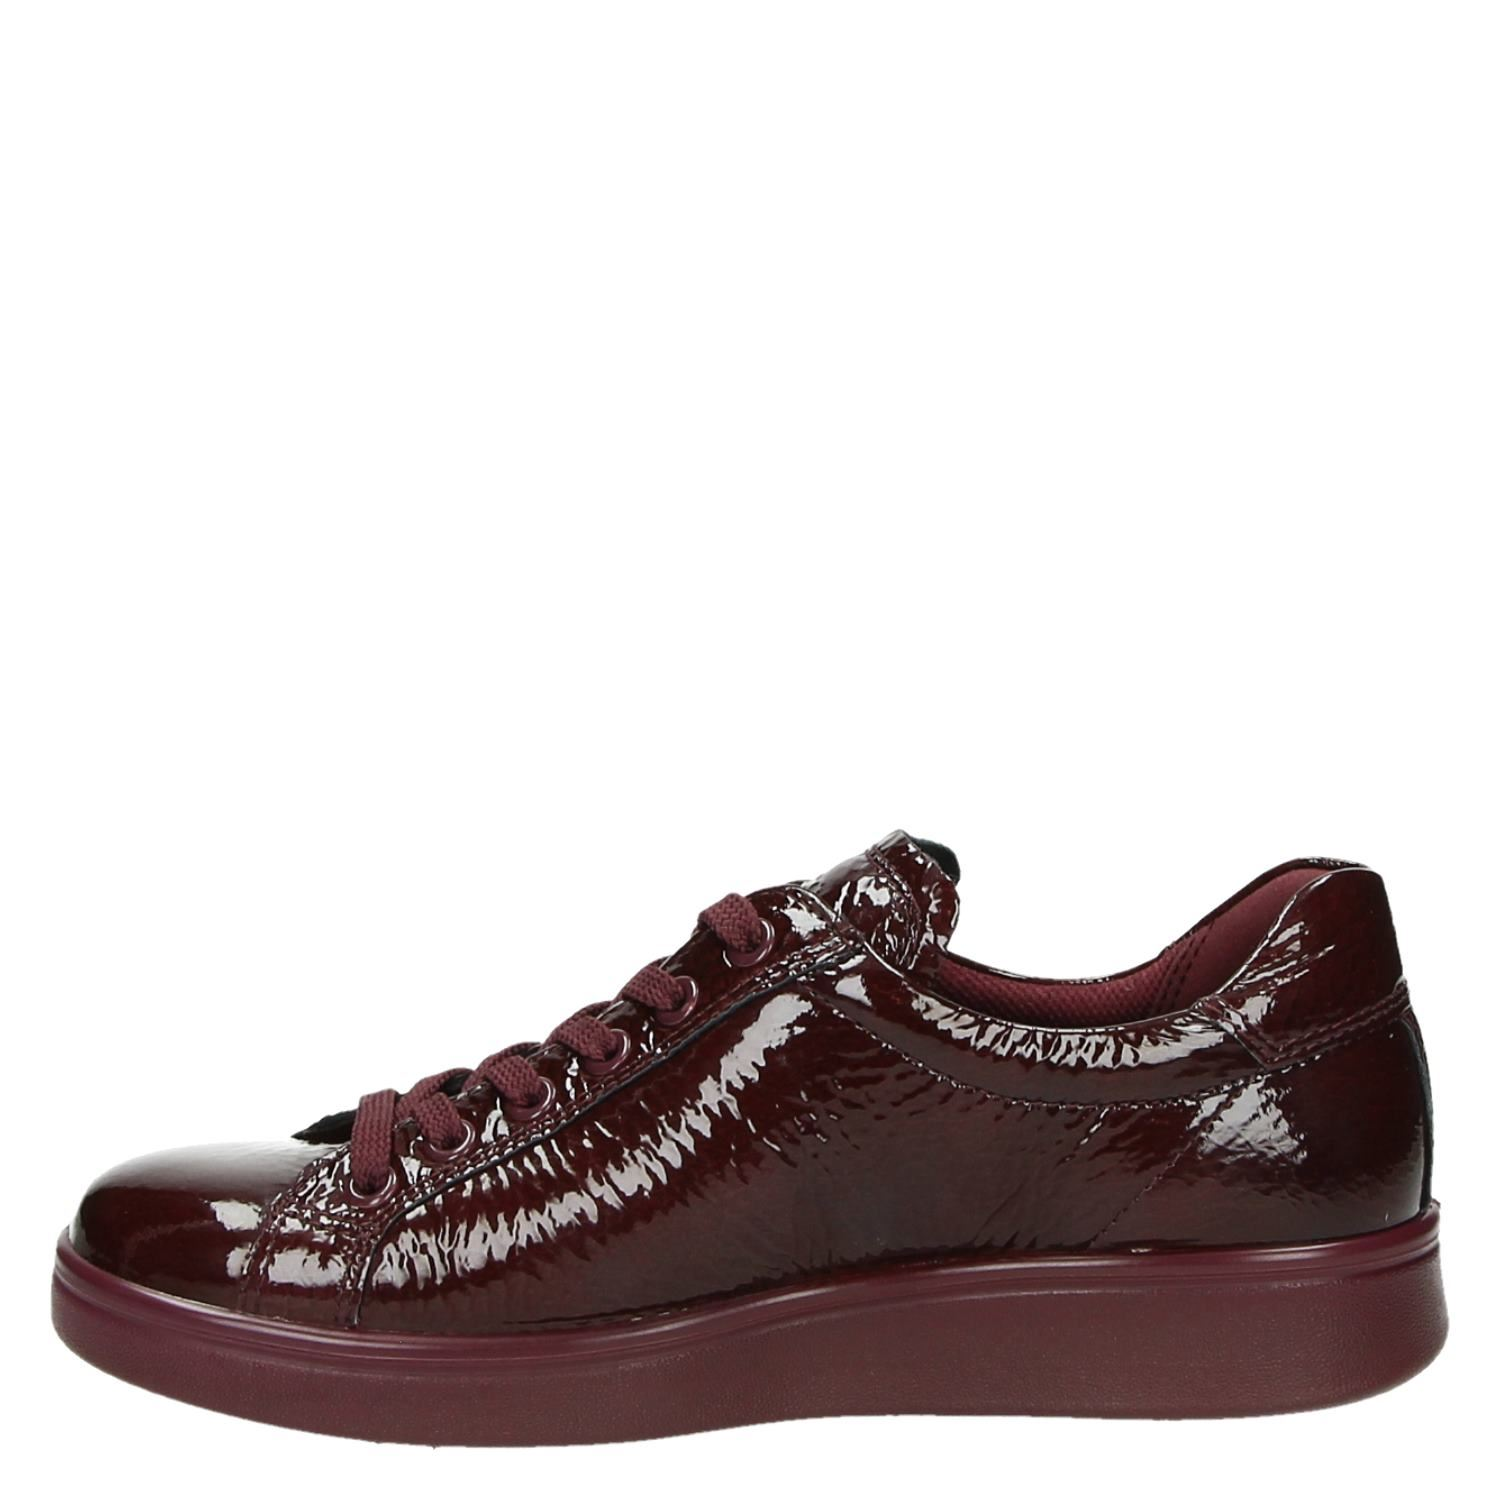 Ecco Doux 4 Baskets Basses Rouges eOcQCWUoX